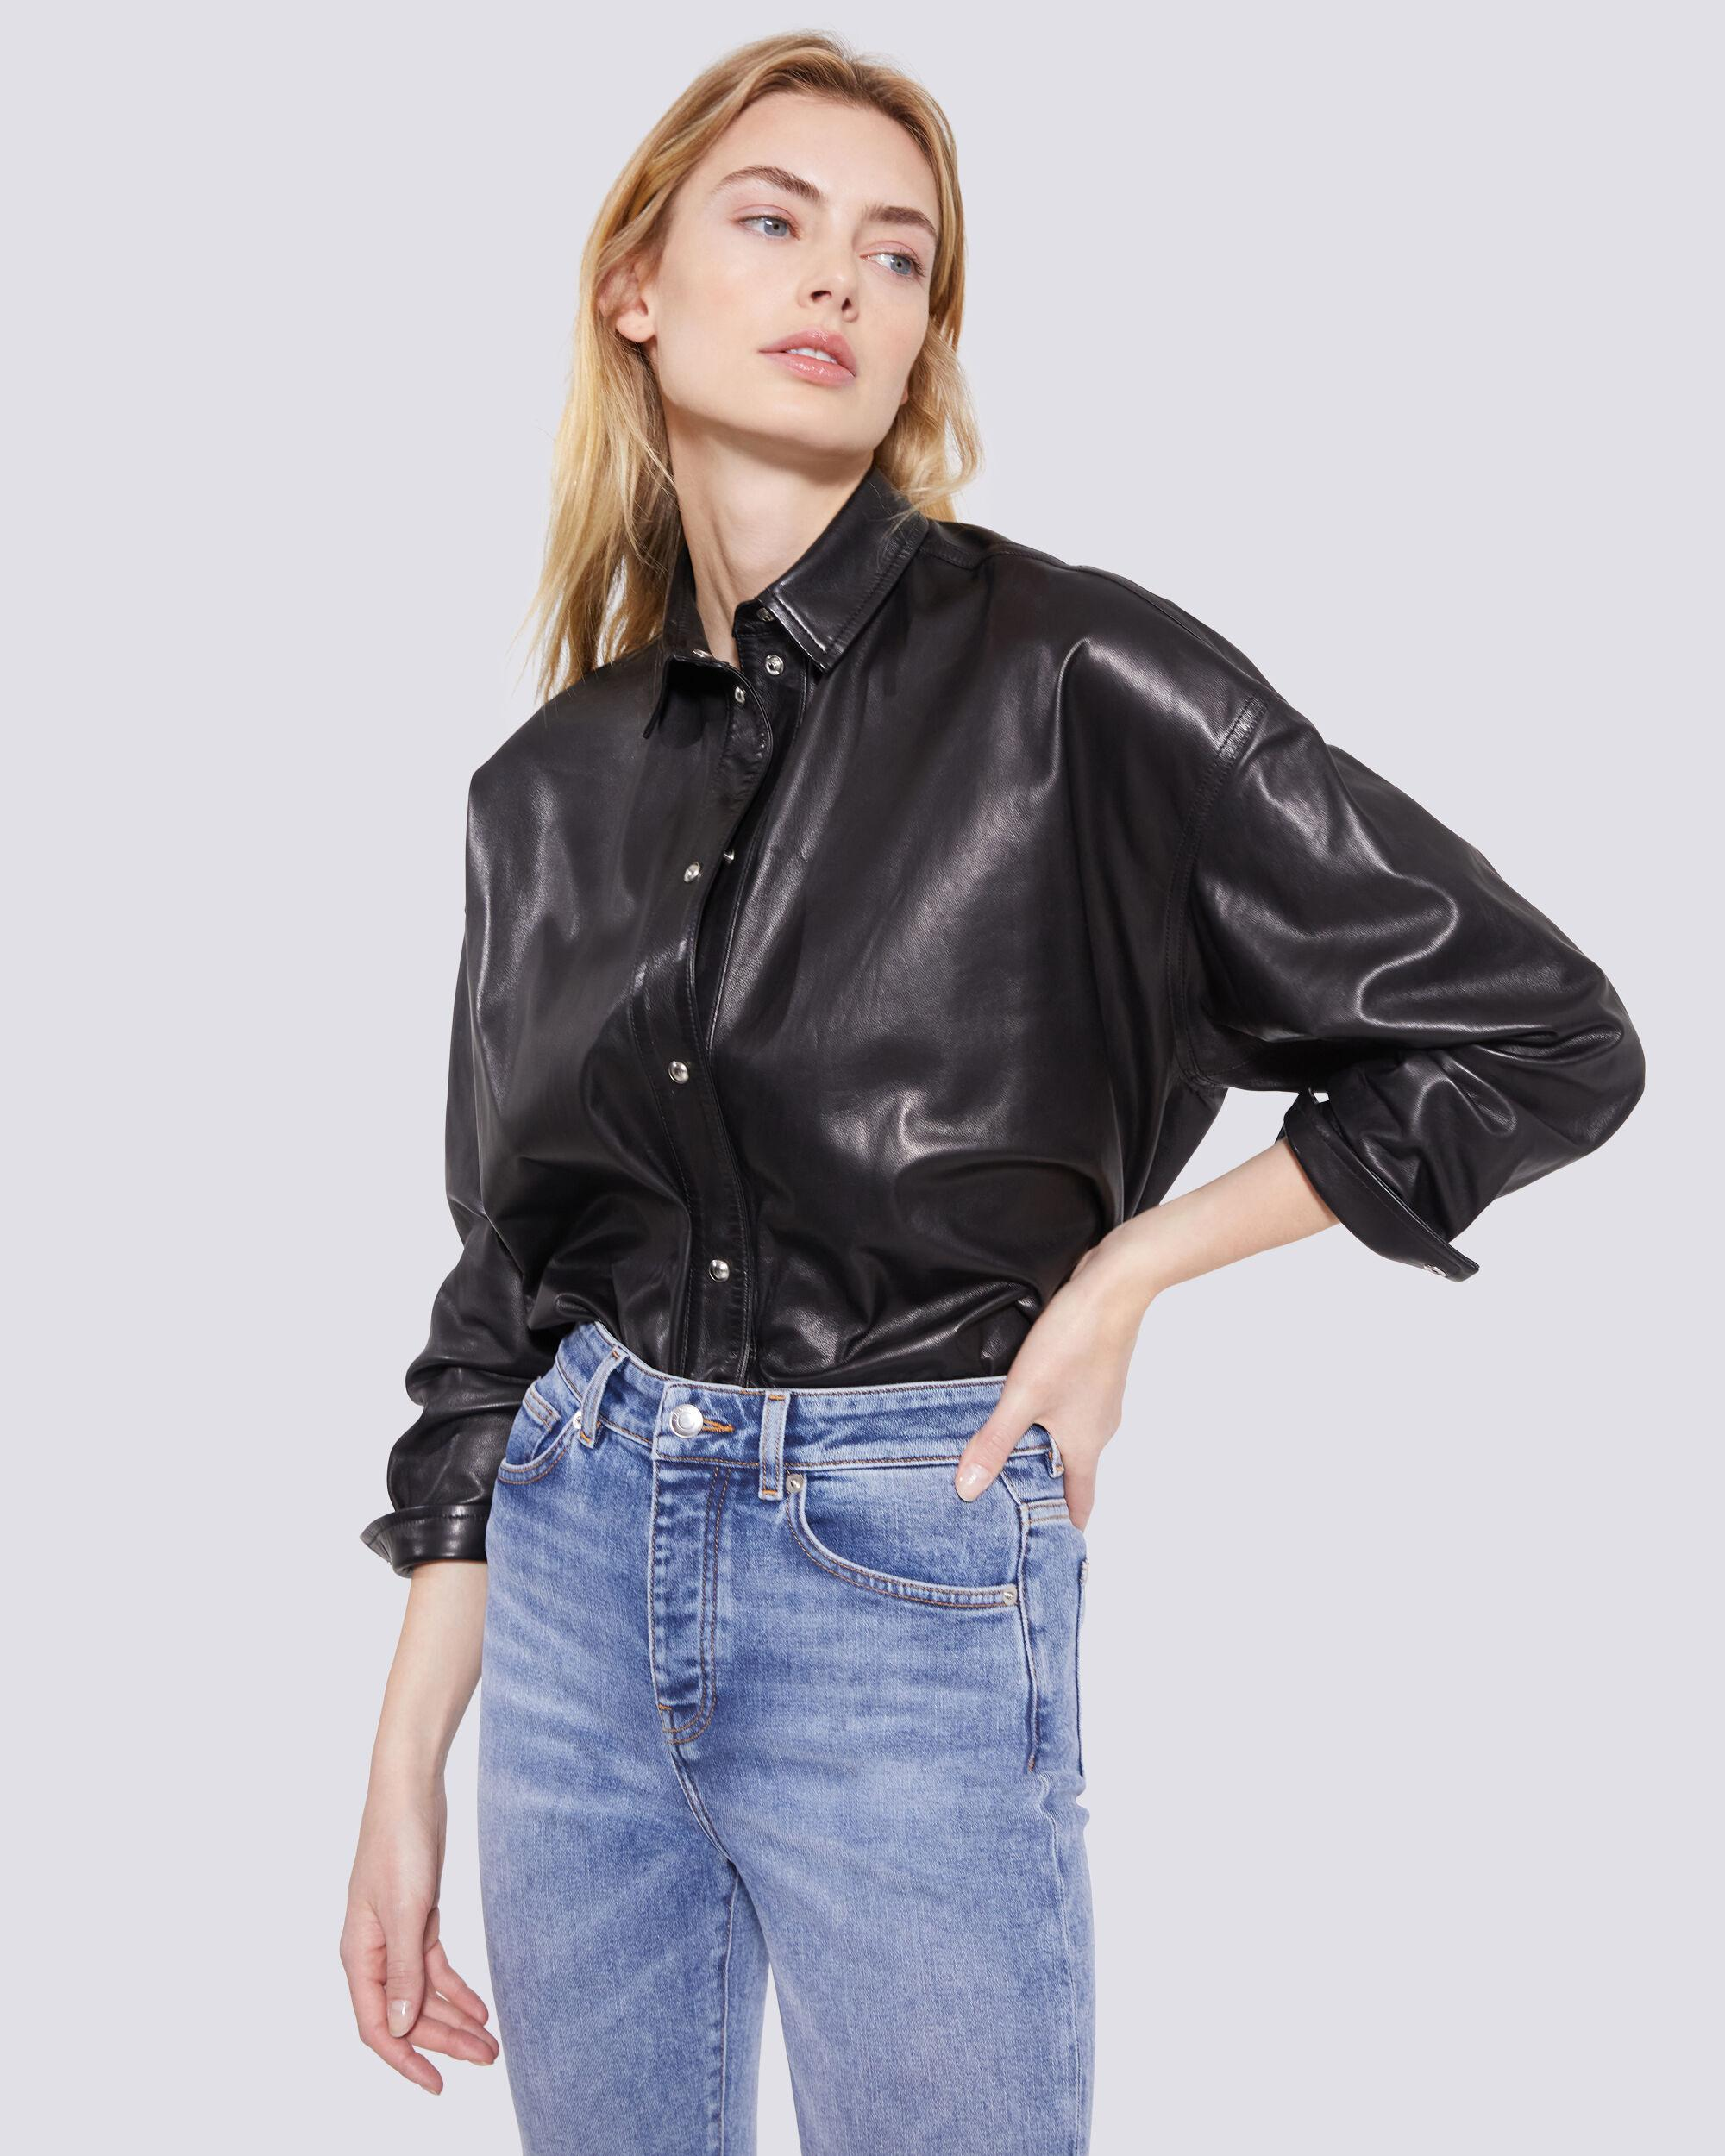 SYSTEM LEATHER BUTTON UP SHIRT